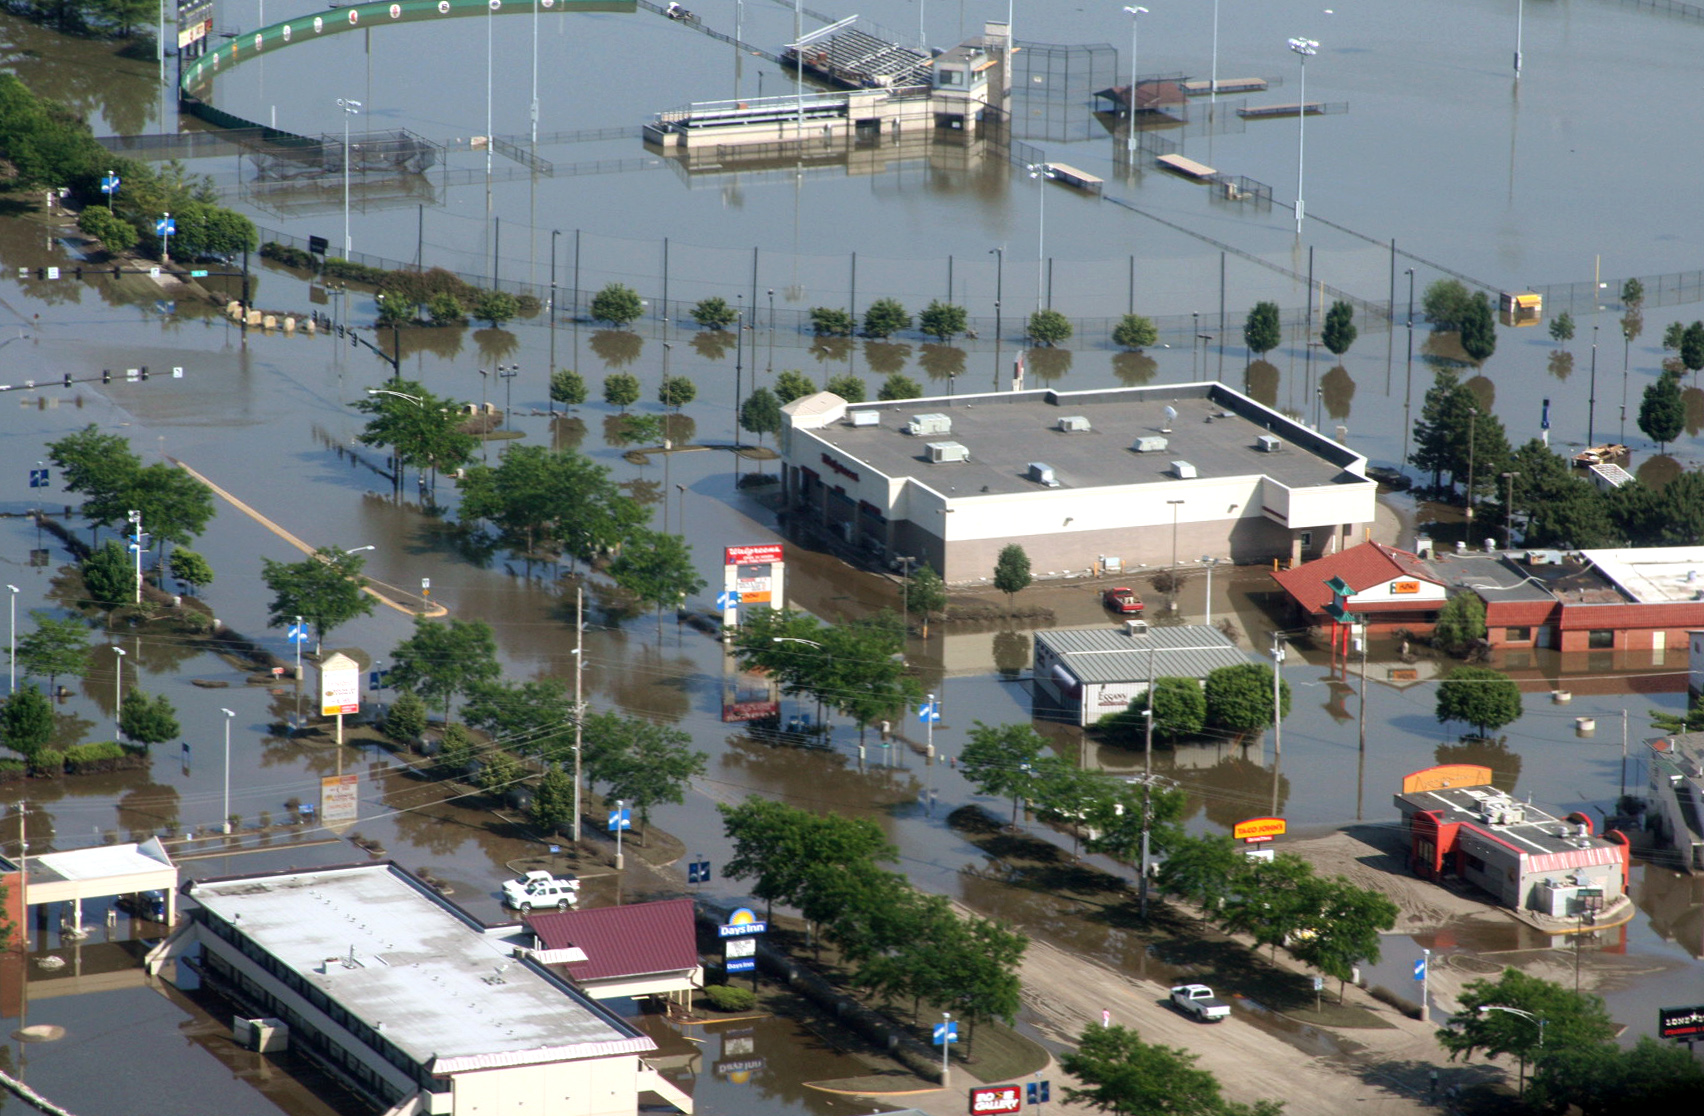 Flood Damage Commercial Insurance Claims Adjusters International Basloe Levin & Cuccaro